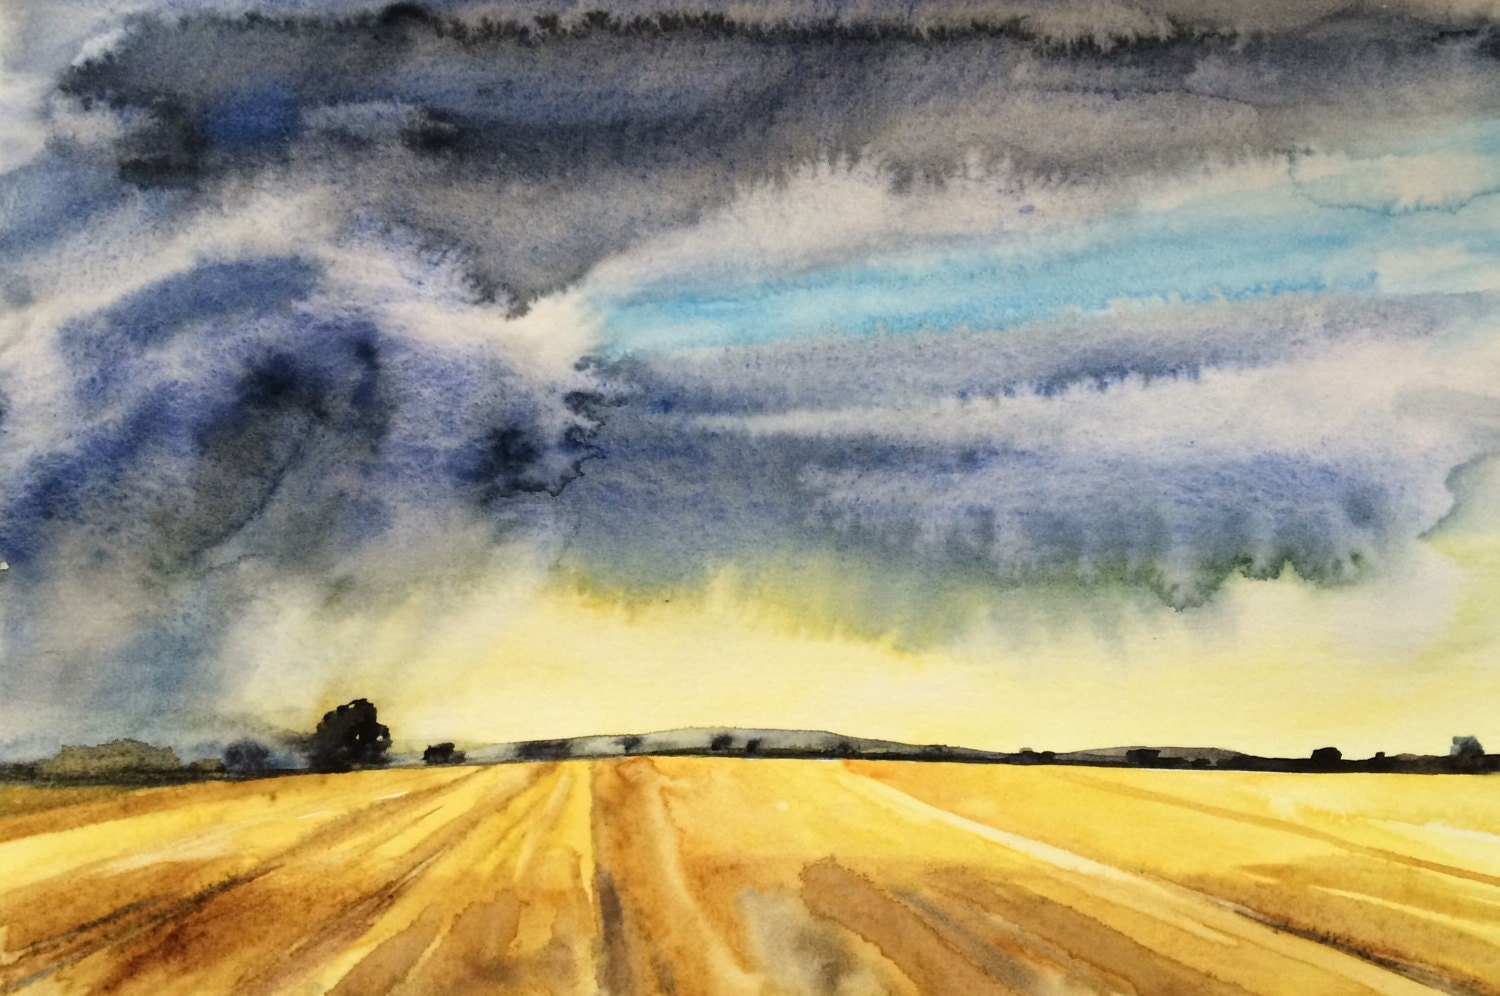 Wheat Field Storm clouds rural landscape Midwest painting for Wheat Farm Painting  131fsj